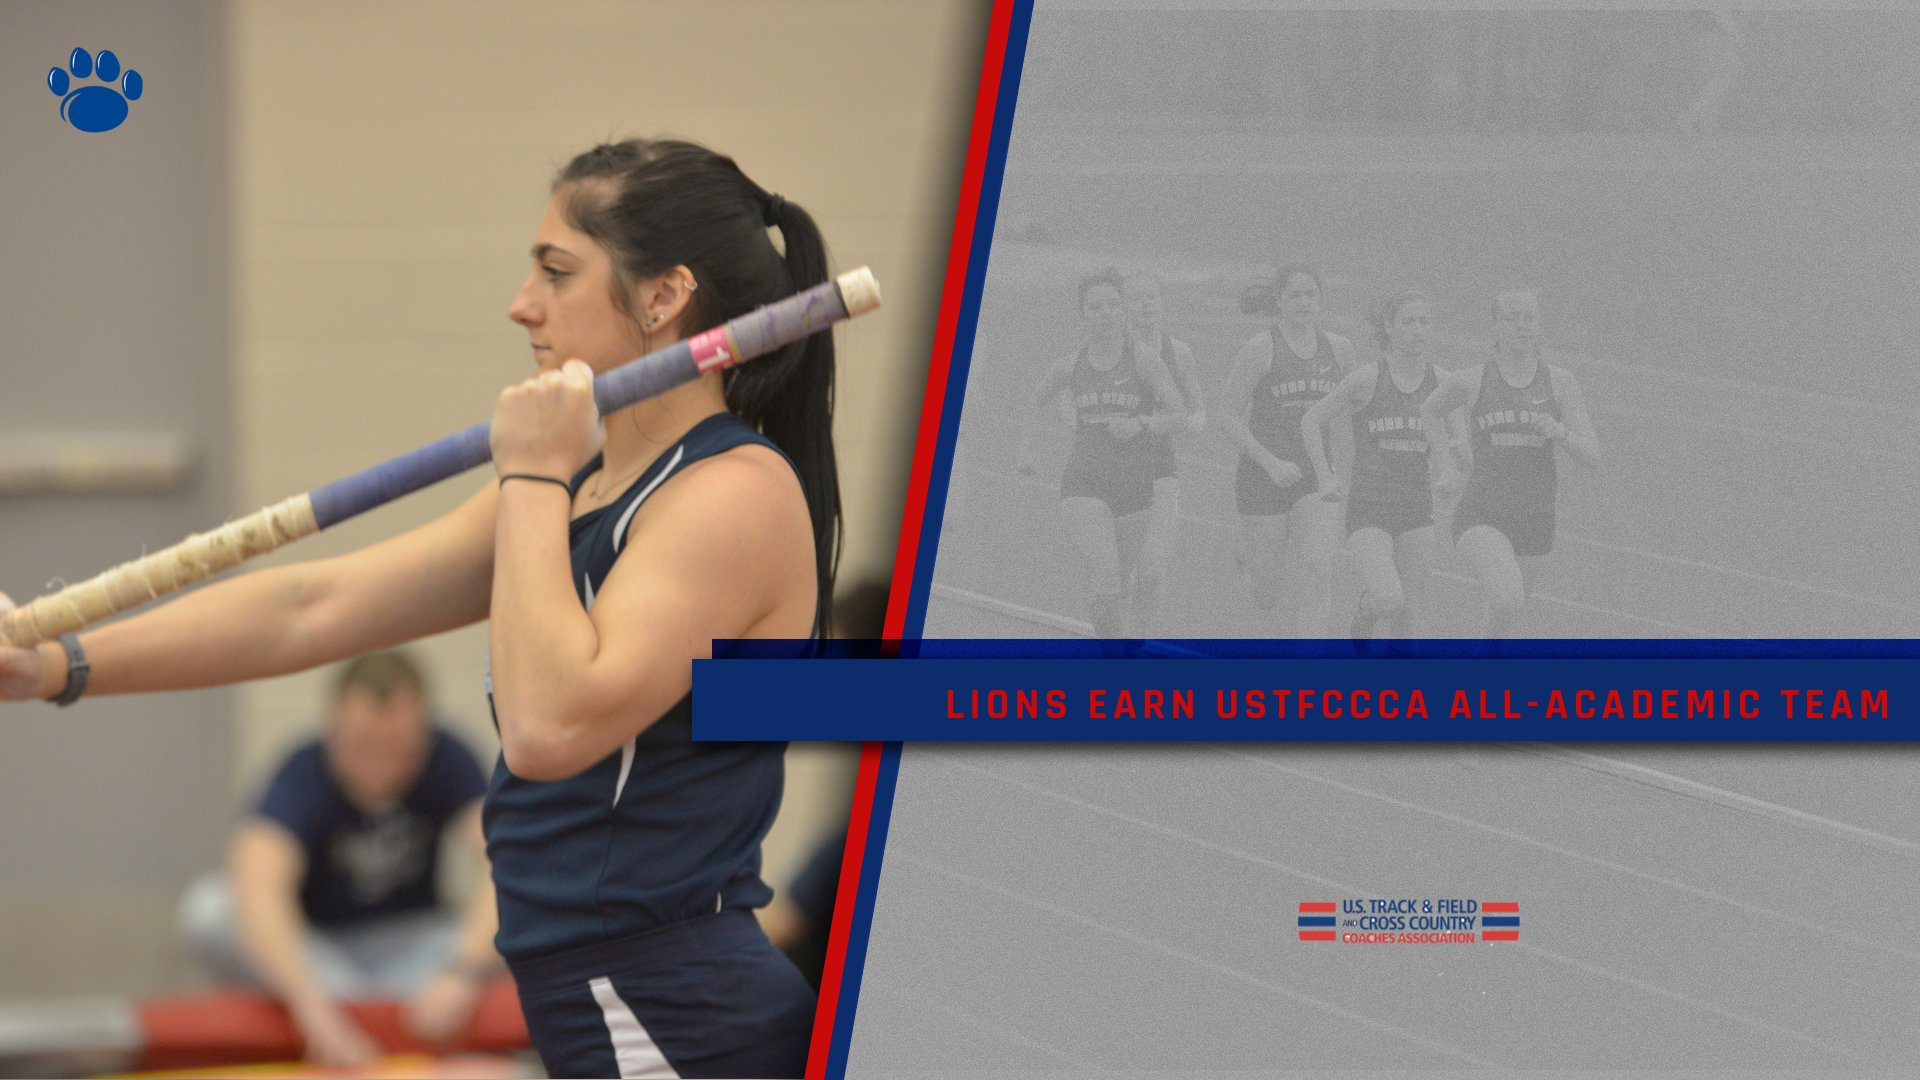 Lions Earn USTFCCCA All-Academic Honors